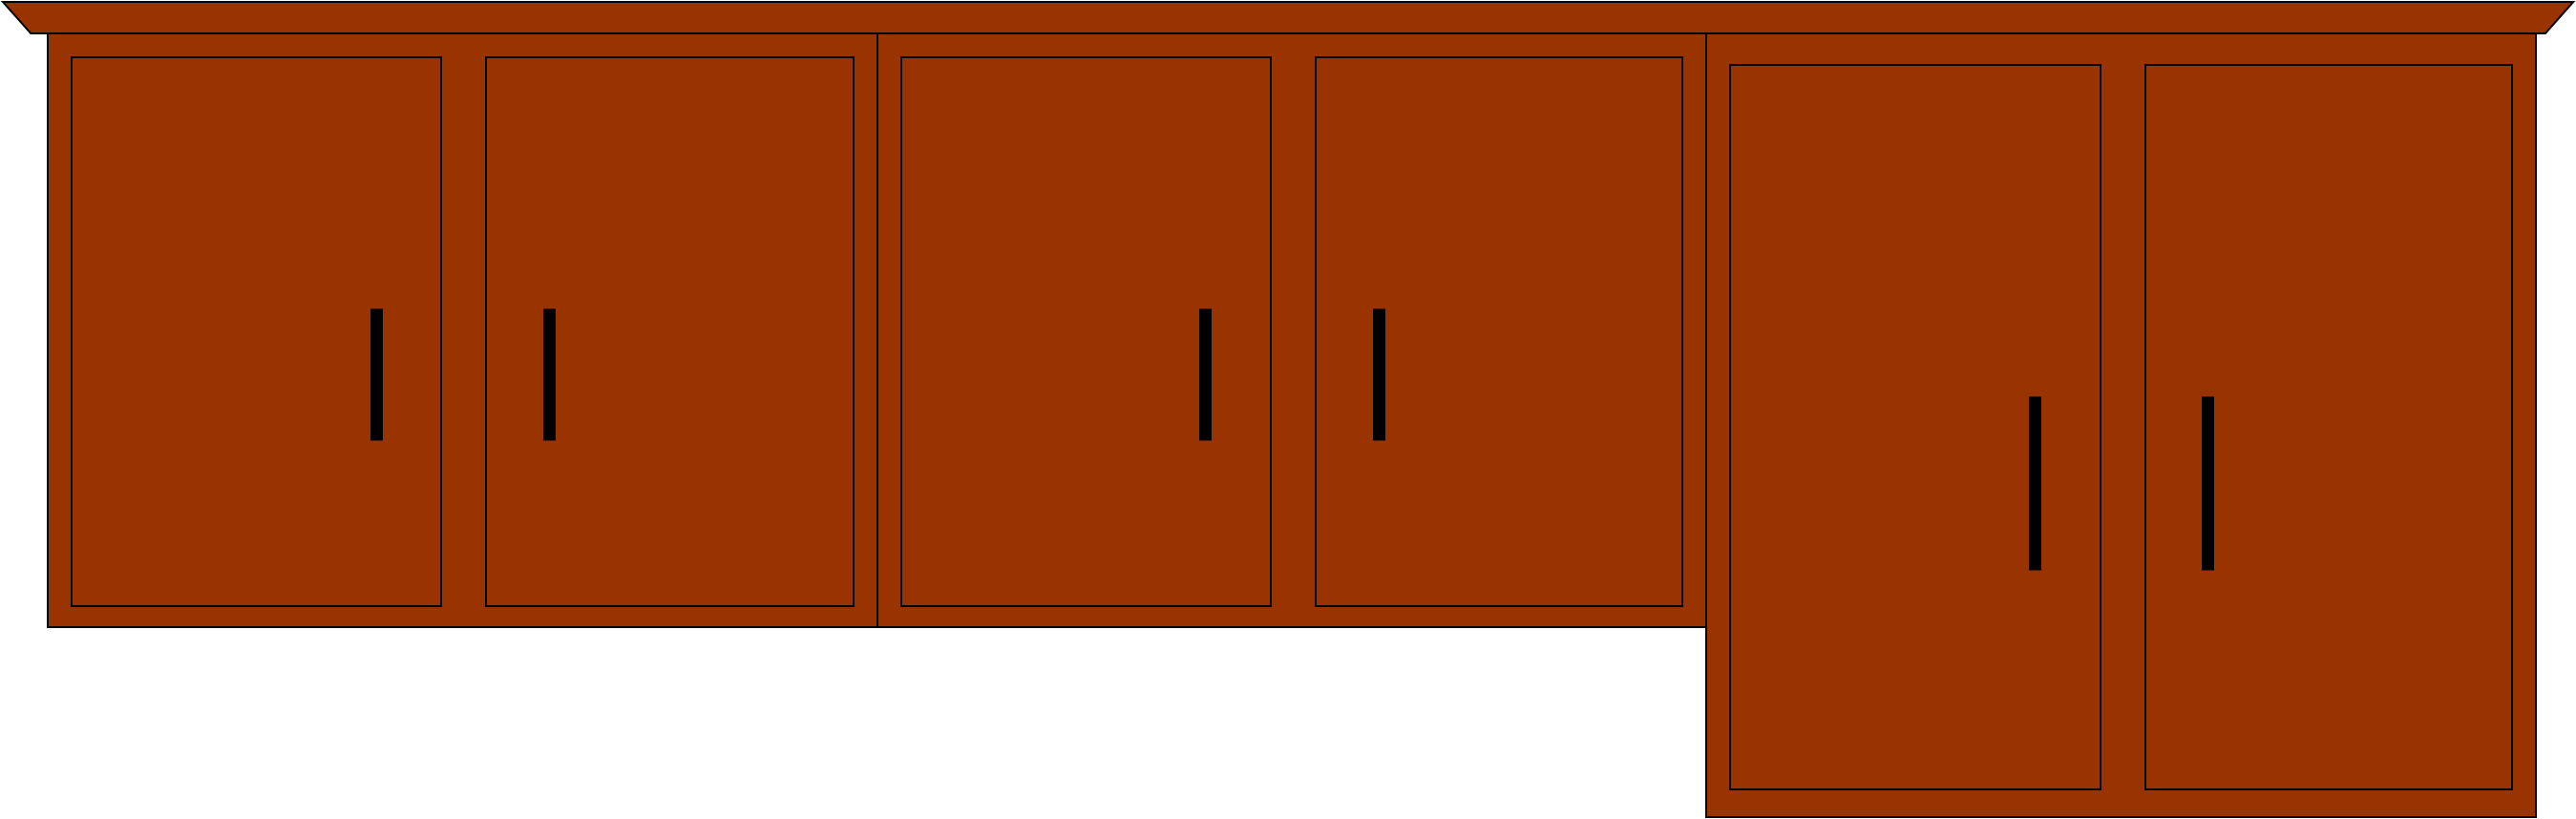 Cabinet Clipart.